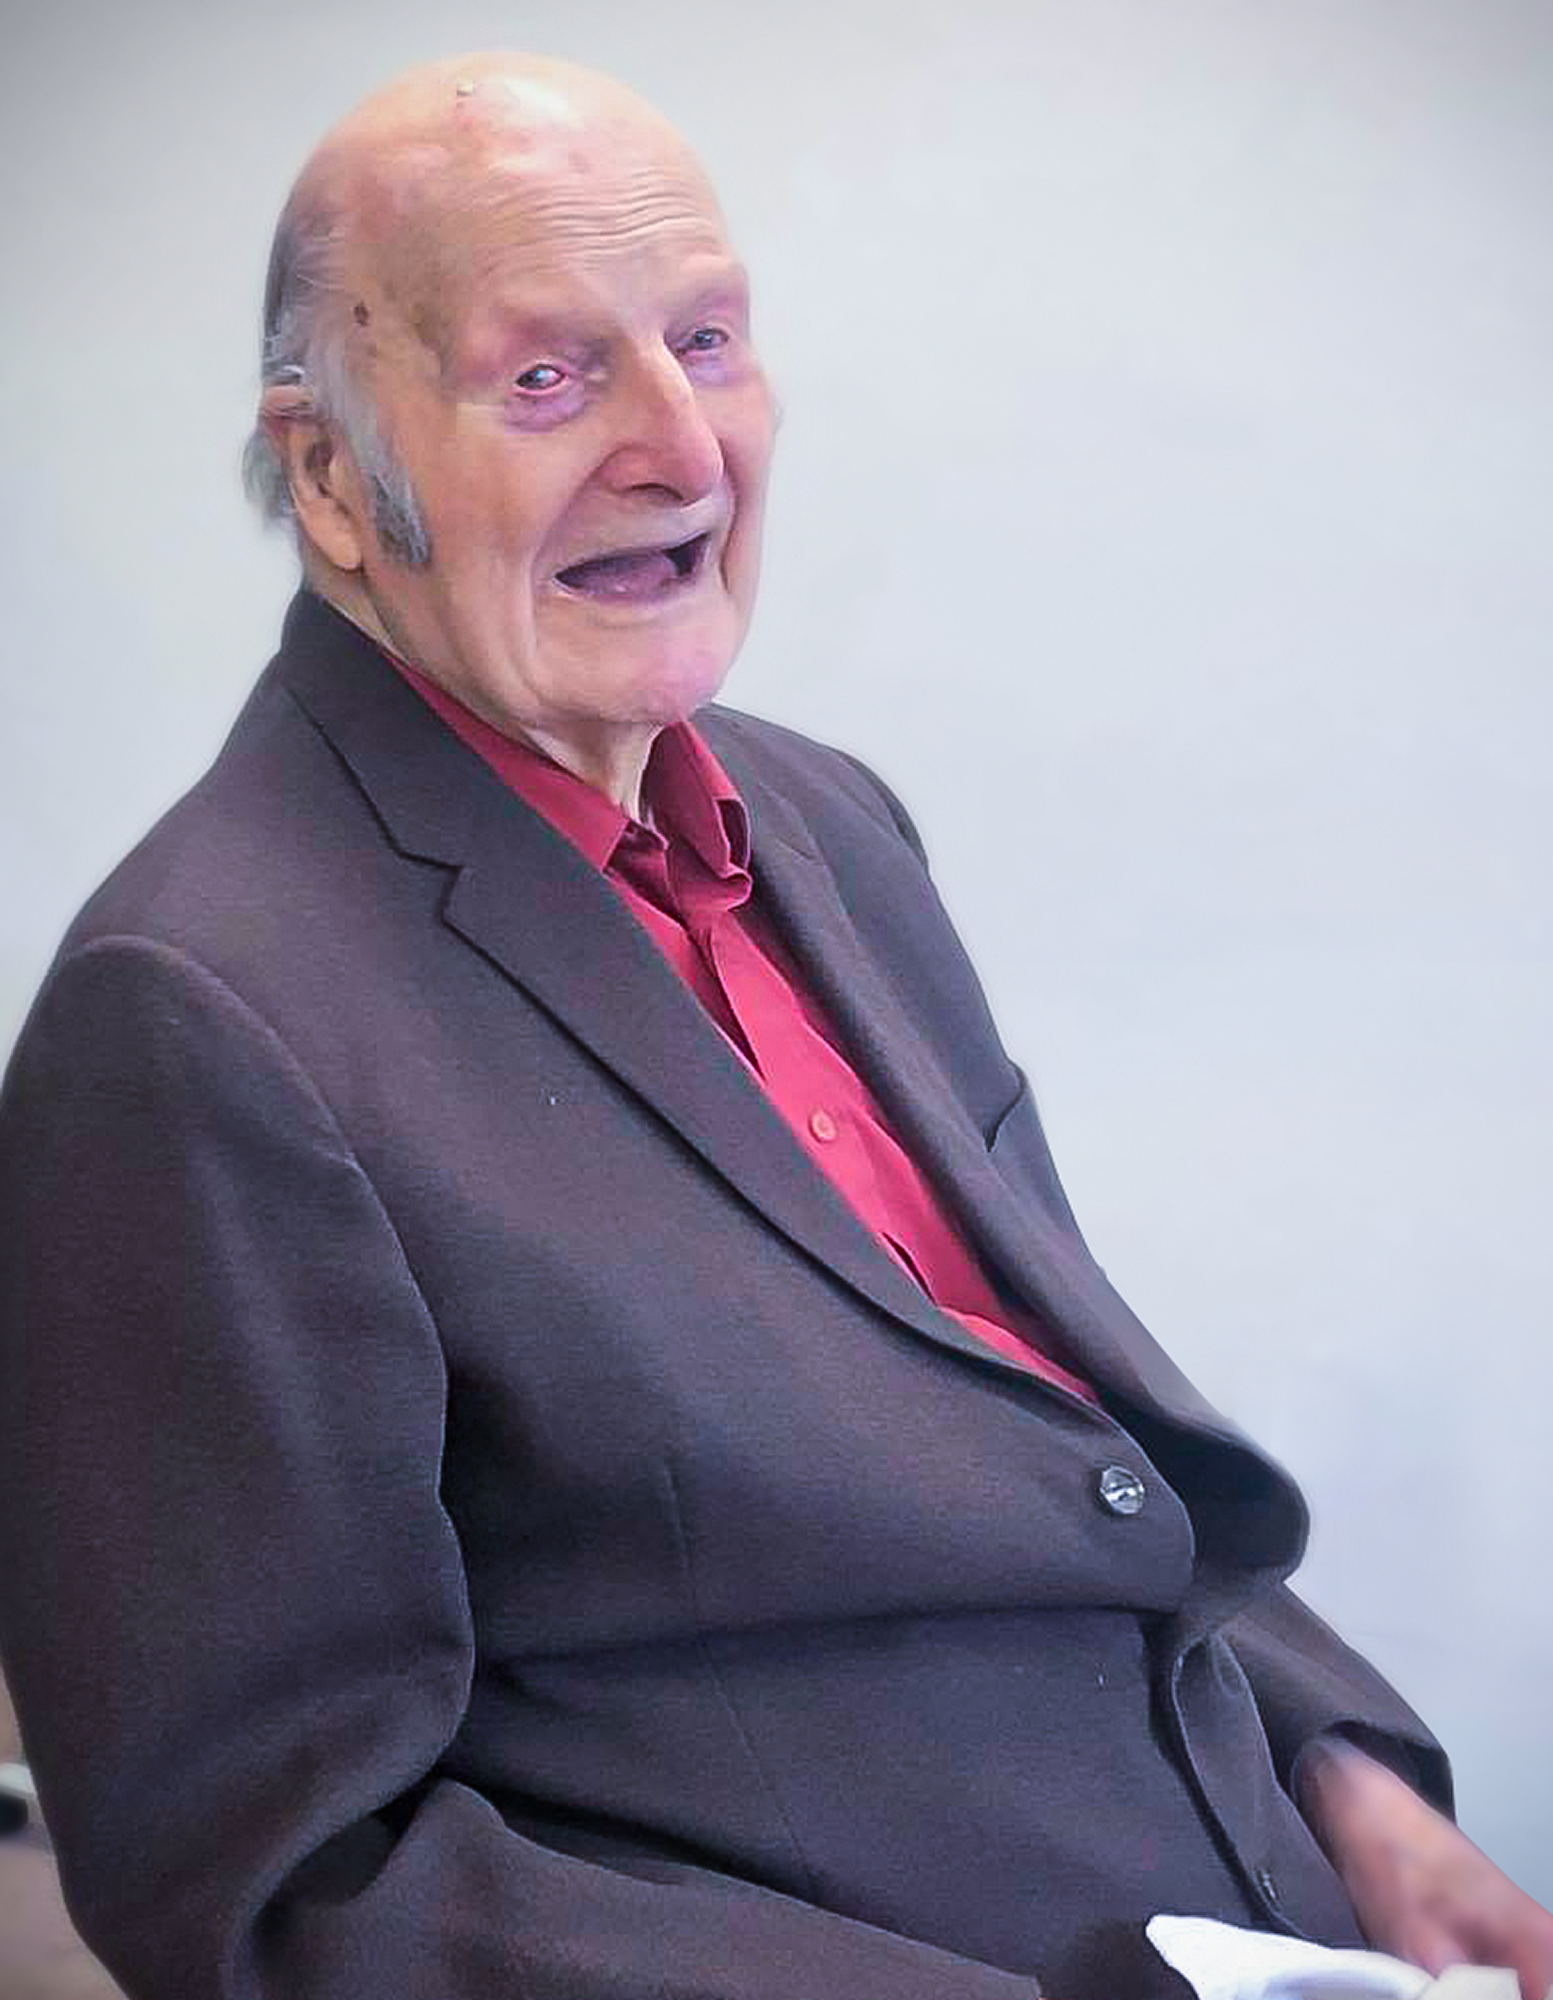 Desmond smiling on his 101st birthday, which he celebrated at The Lawn care home in Alton